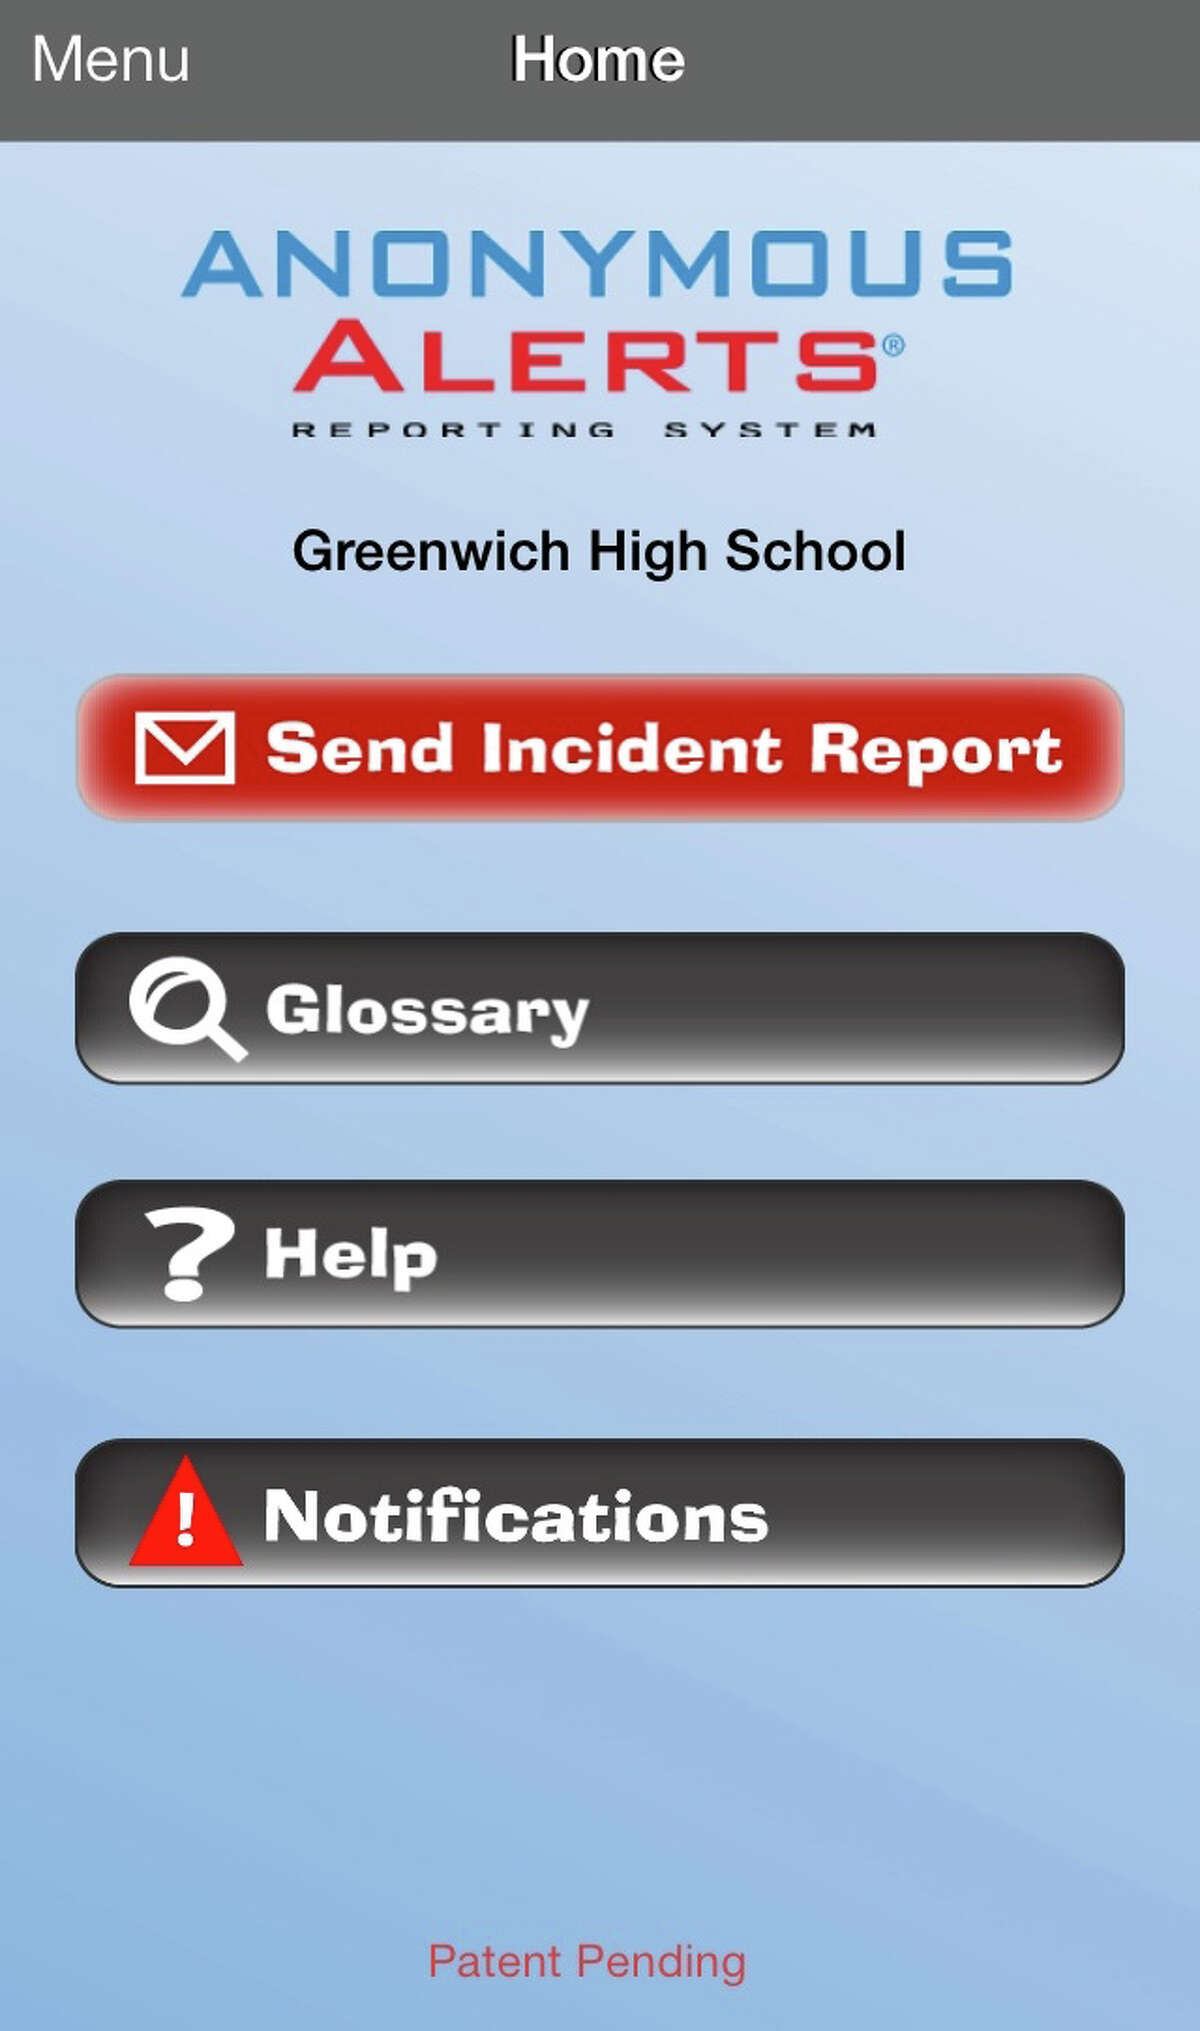 Greenwich High School has made an app called Anonymous Alerts available for students, teachers, parents and other community members to submit anonymous reports about issues such as bullying.